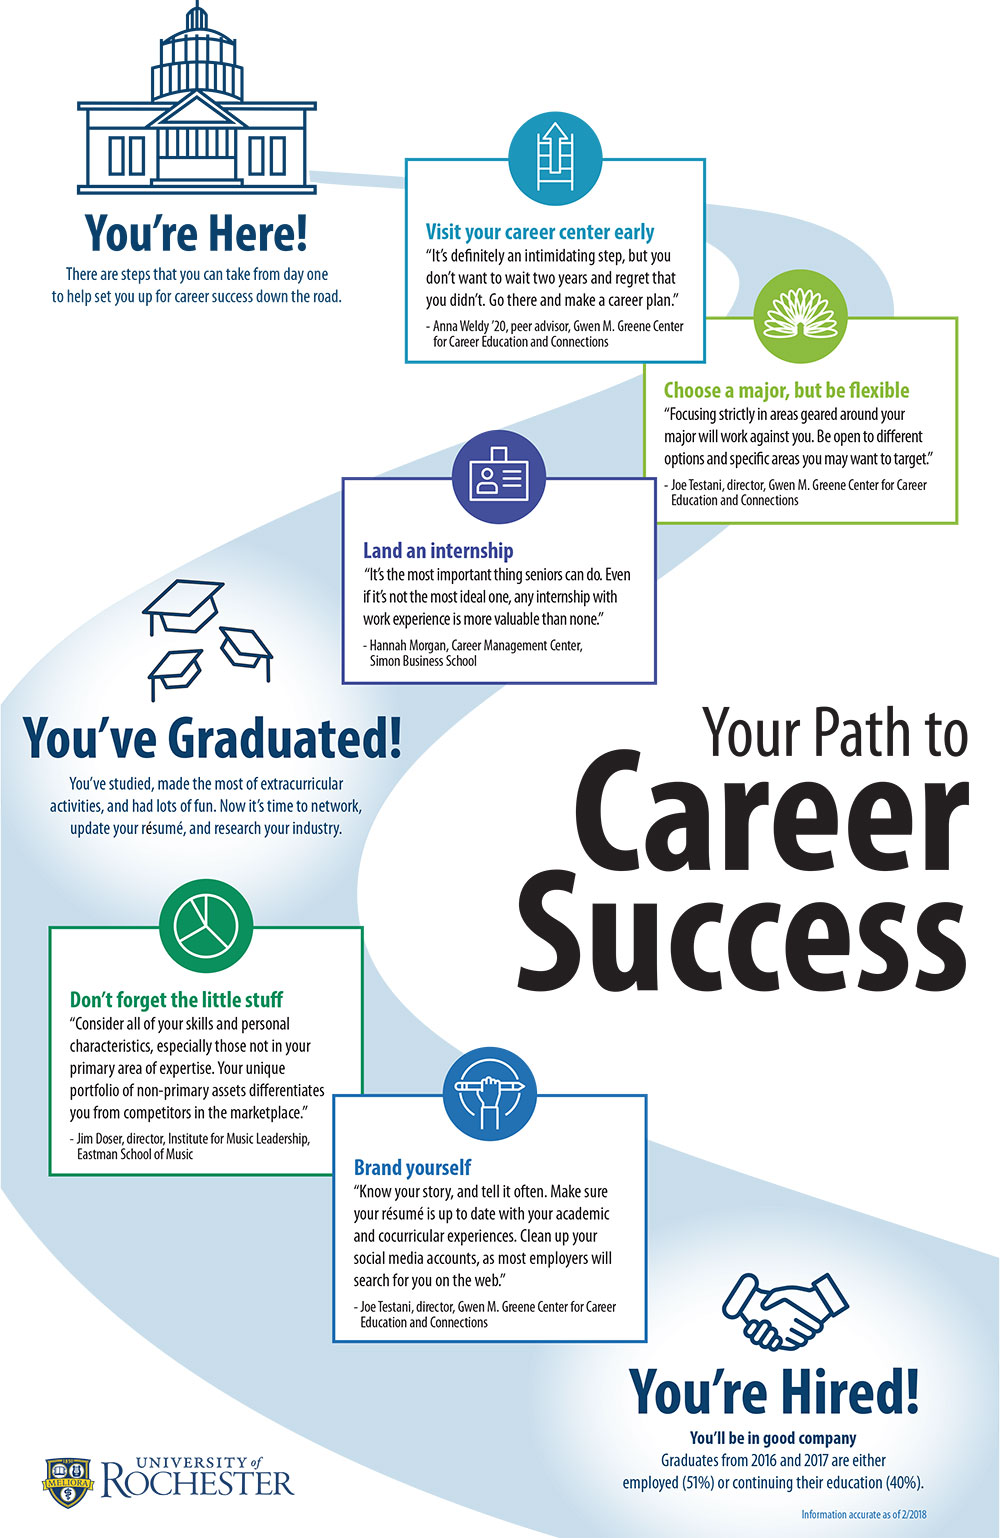 Changing approaches guide students' path to career success